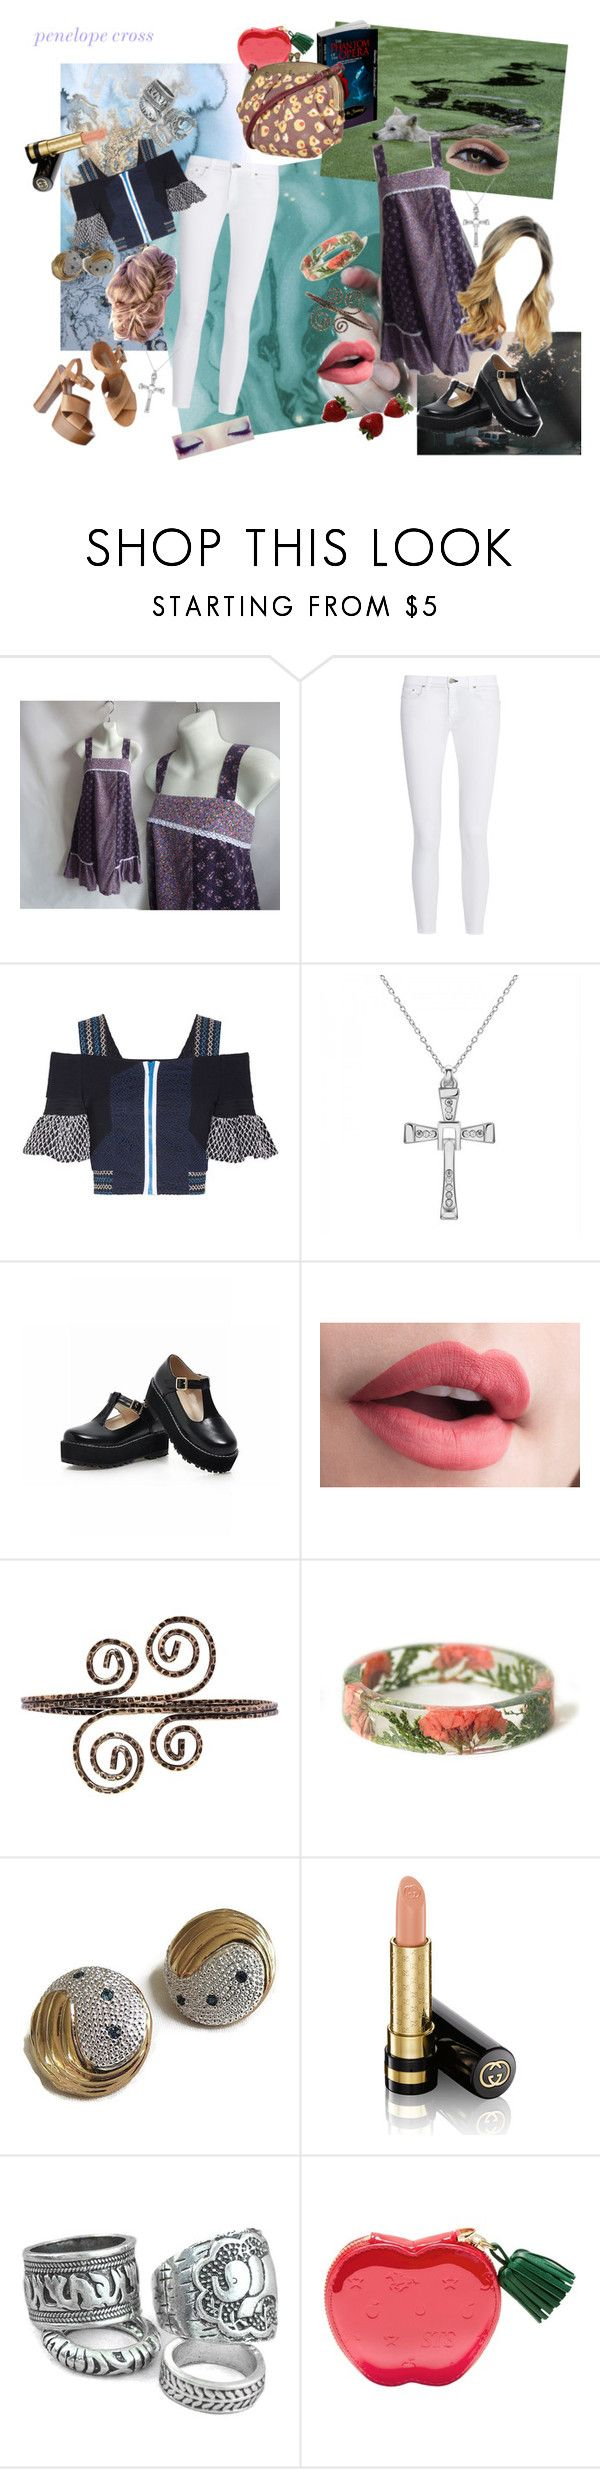 """""""everyone loves a smile"""" by thewhoreofcookies ❤ liked on Polyvore featuring rag & bone, Peter Pilotto, Michael Kors, New Look, Gucci, vintage, mashverse and saycheeseforthecamera"""